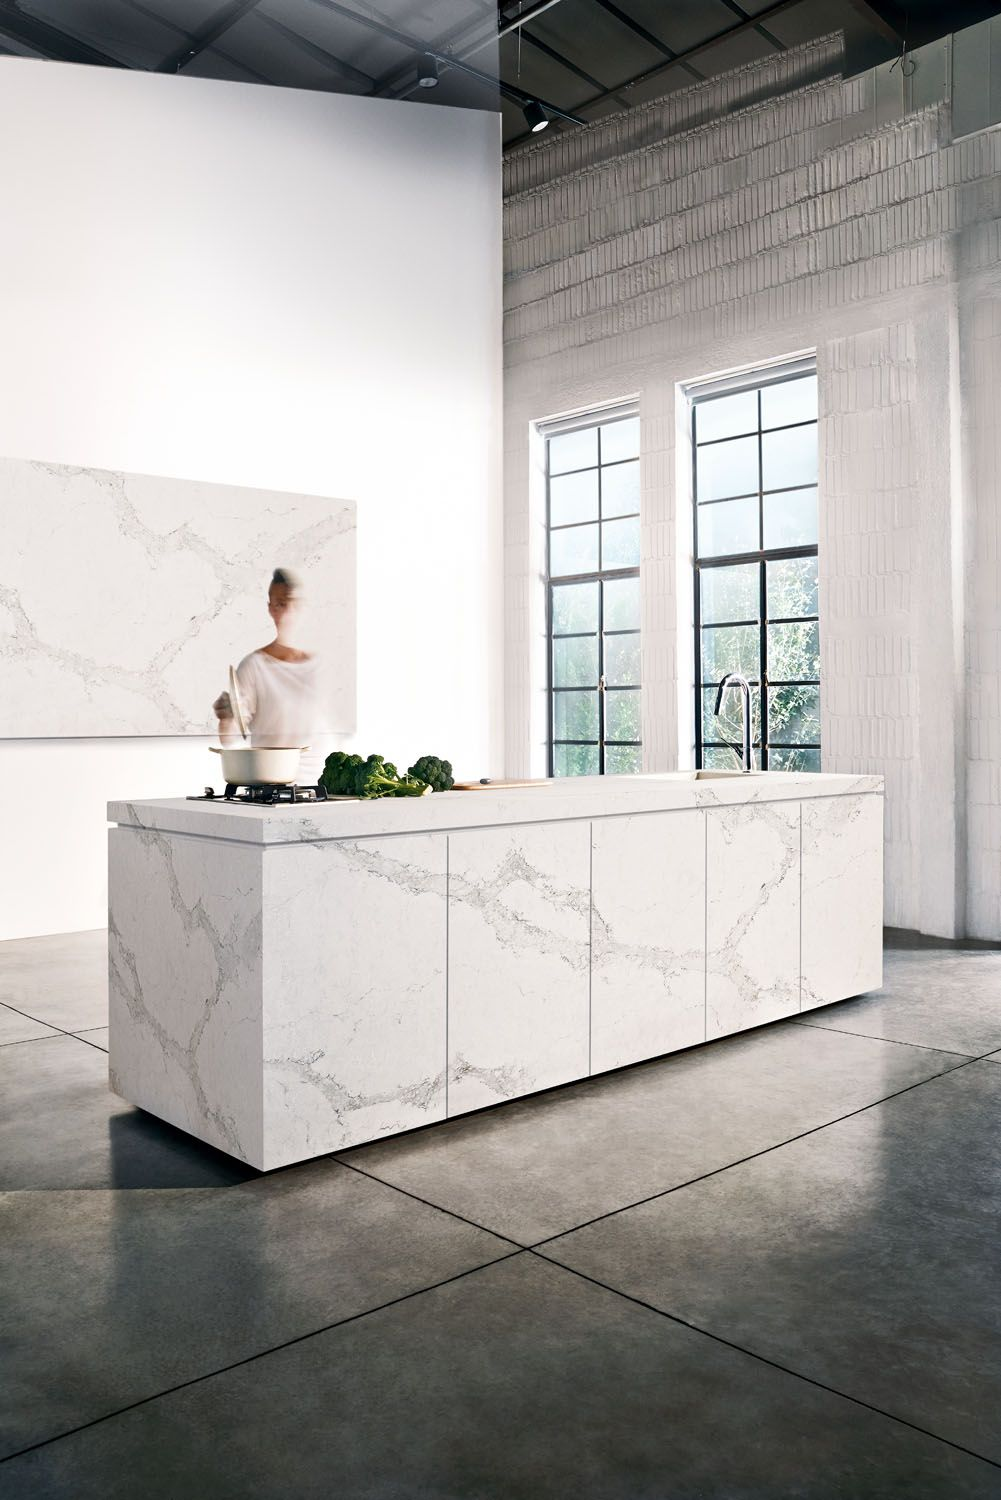 Caesarstone Calacatta Nuvo White Kitchens By Caesarstone Calacatta Nuvo Dark Kitchen